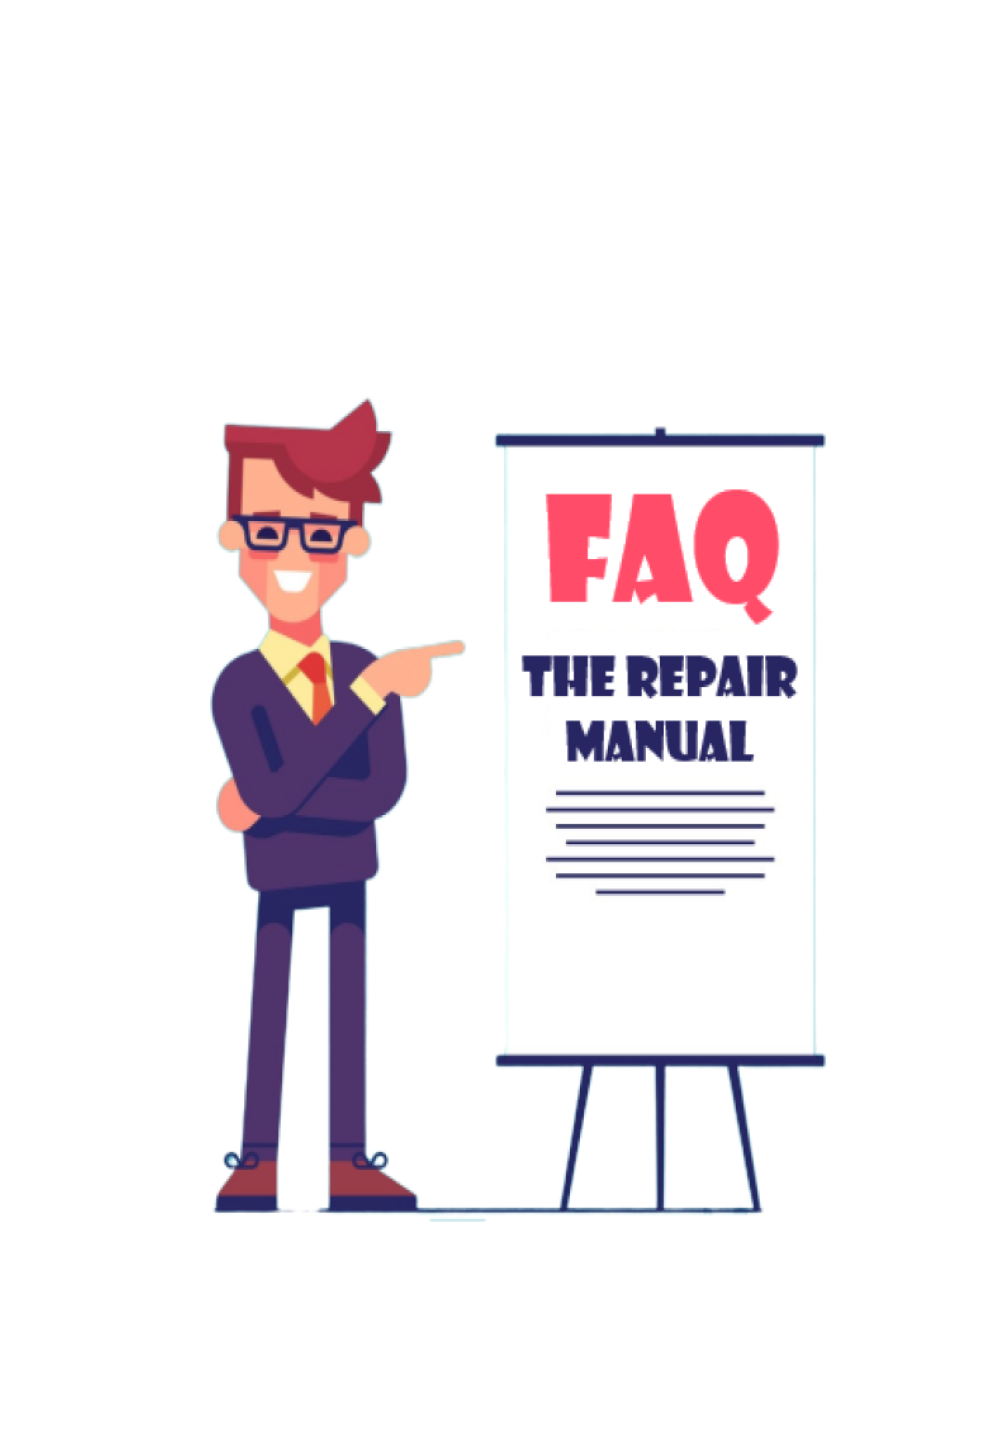 The Repair Manual - FAQs